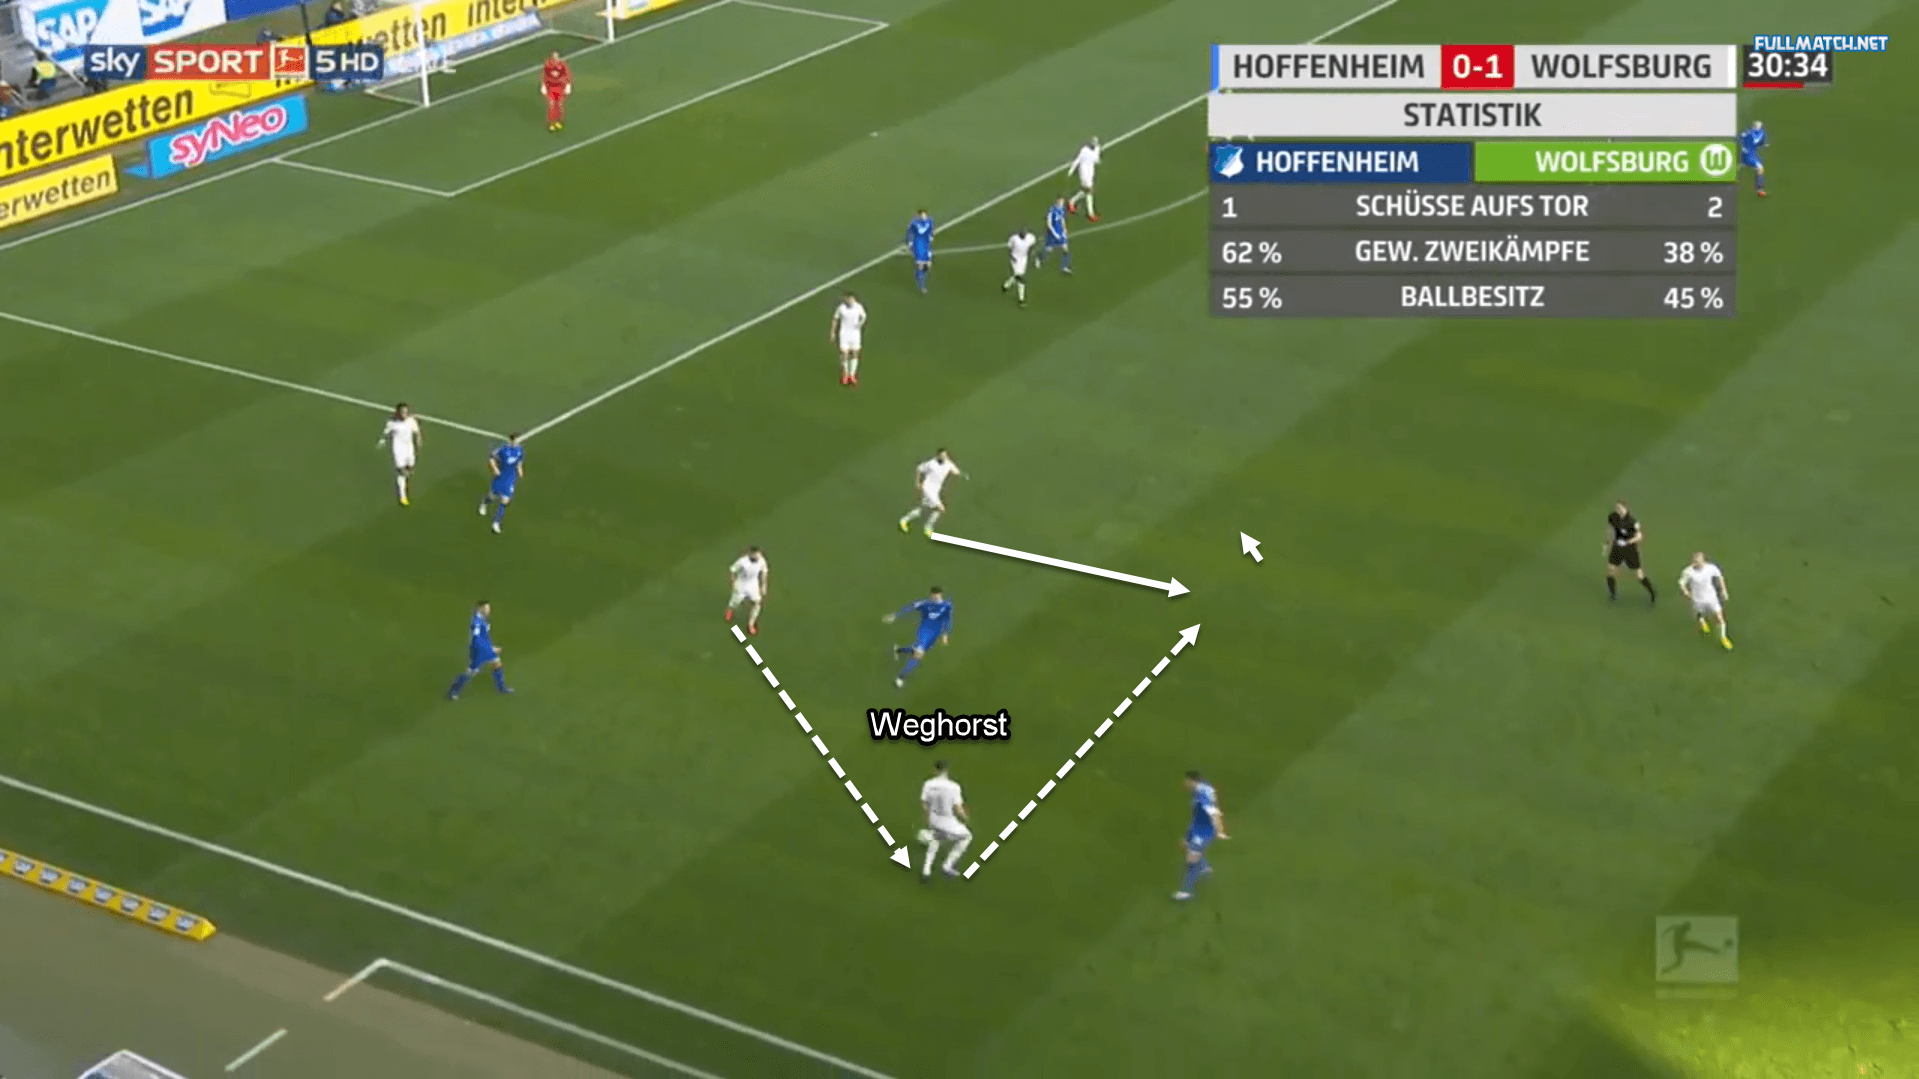 Wout Weghorst at VfL Wolfsburg 2019/20 - scout report - tactical analysis tactics